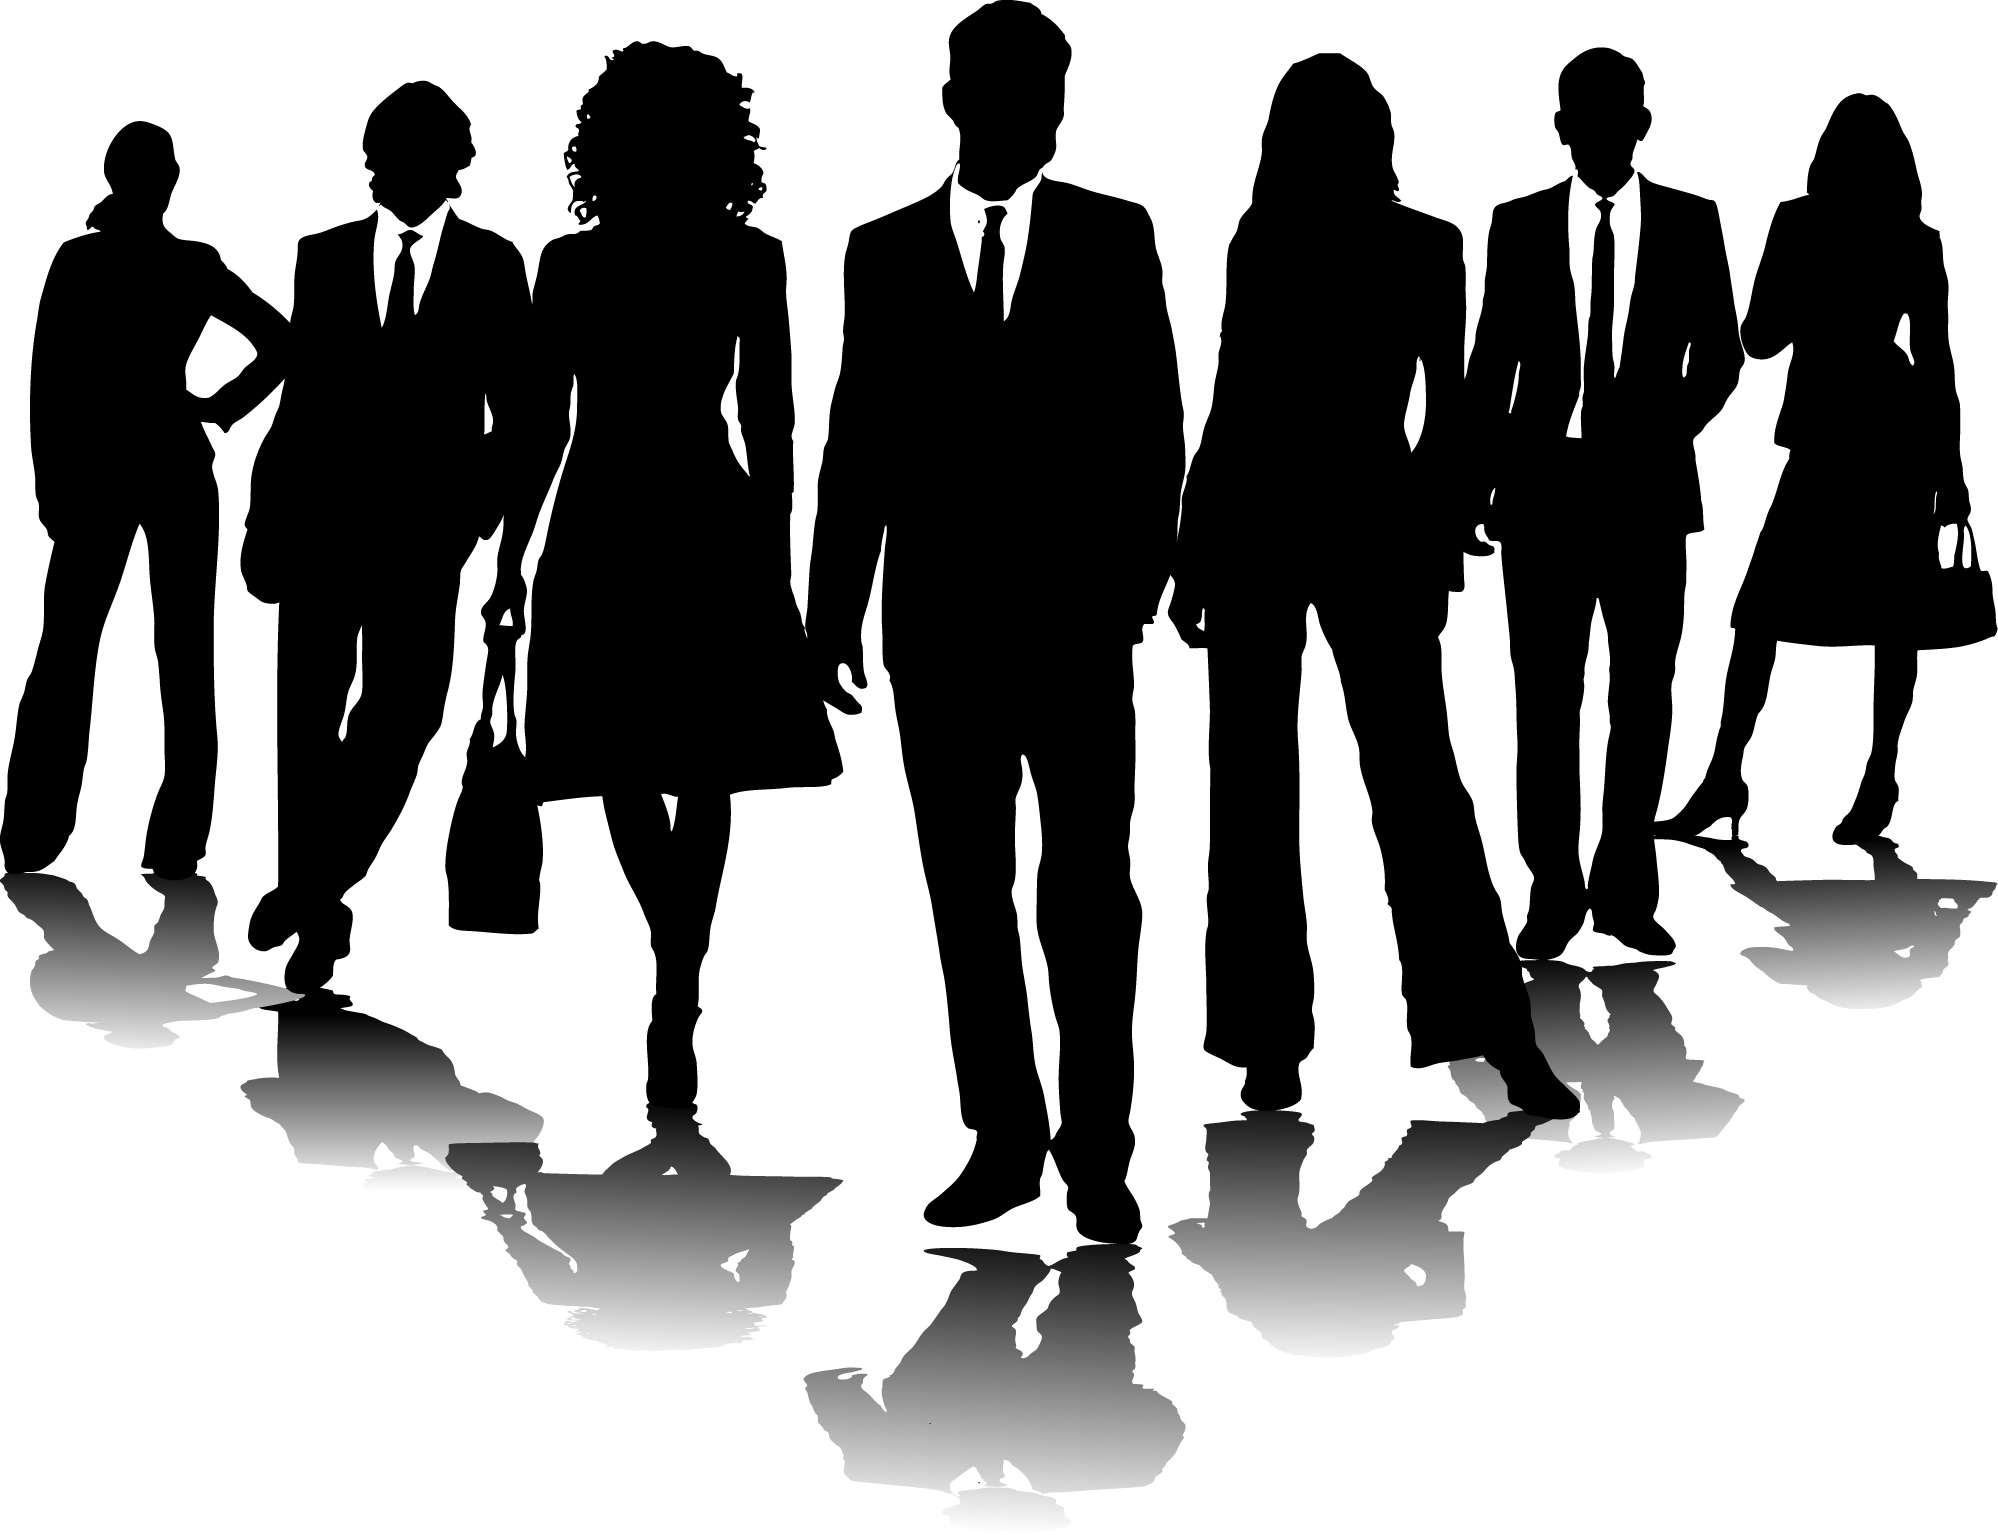 Business People Clipart Free Clipart Ima-Business people clipart free clipart images 2-14